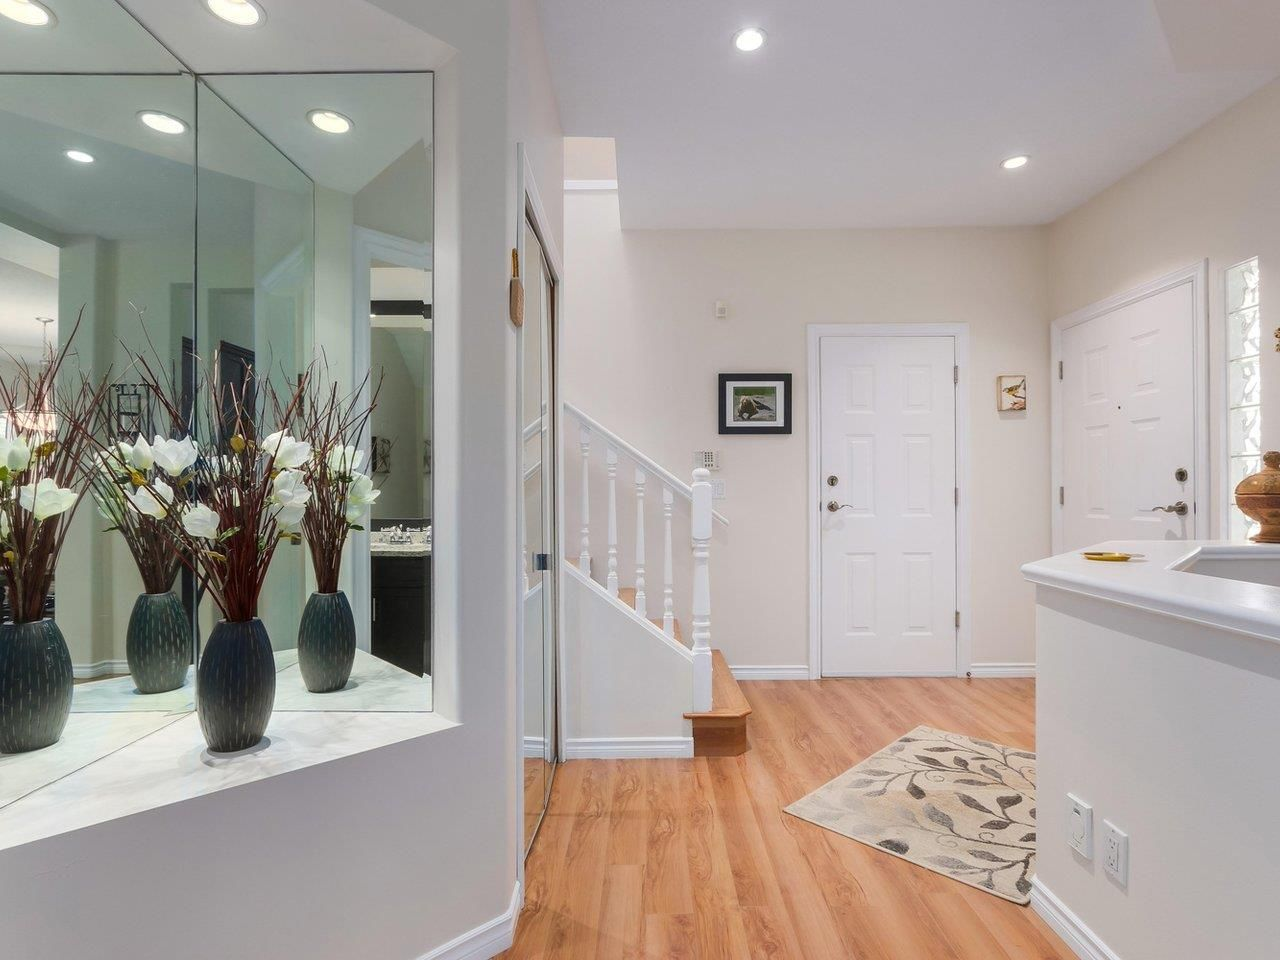 """Photo 2: Photos: 21 998 RIVERSIDE Drive in Port Coquitlam: Riverwood Townhouse for sale in """"PARKSIDE PLACE"""" : MLS®# R2371728"""